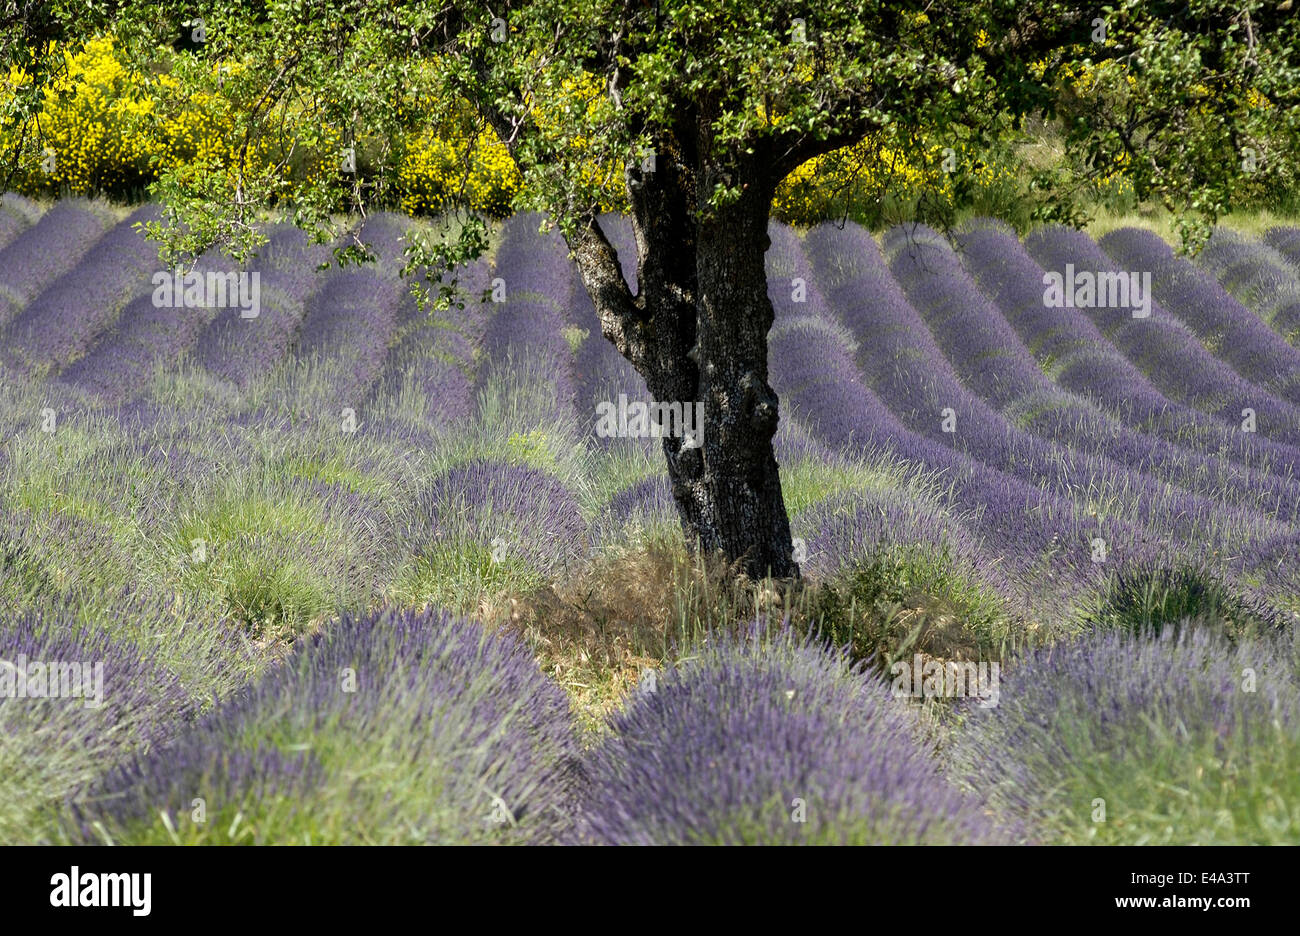 Beautiful blooming lavender field in the Valensole region of Provence, France in the summer season - Stock Image